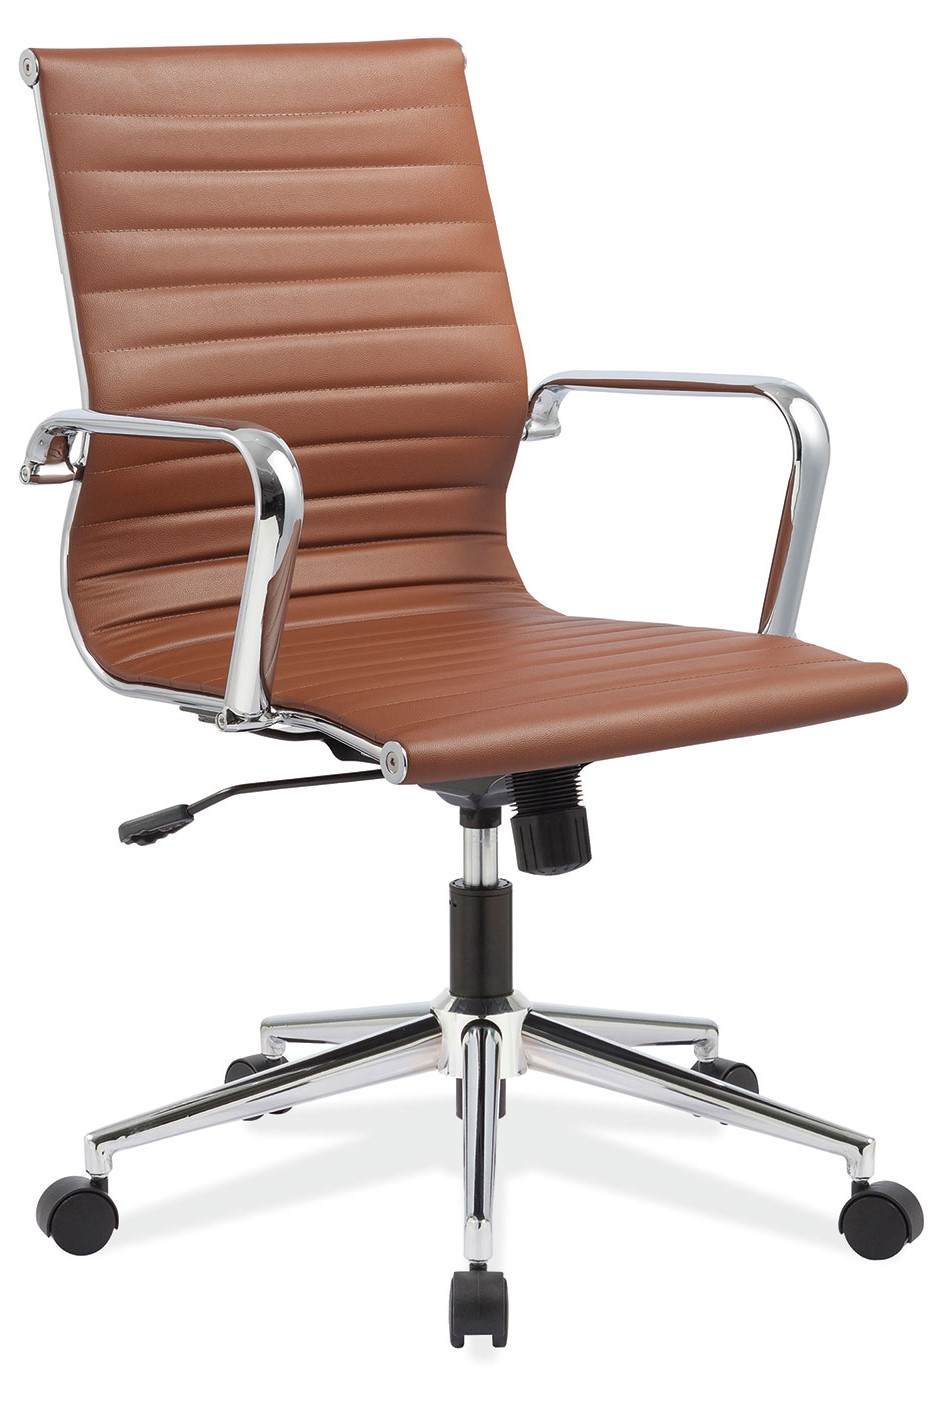 Conference Chair 7